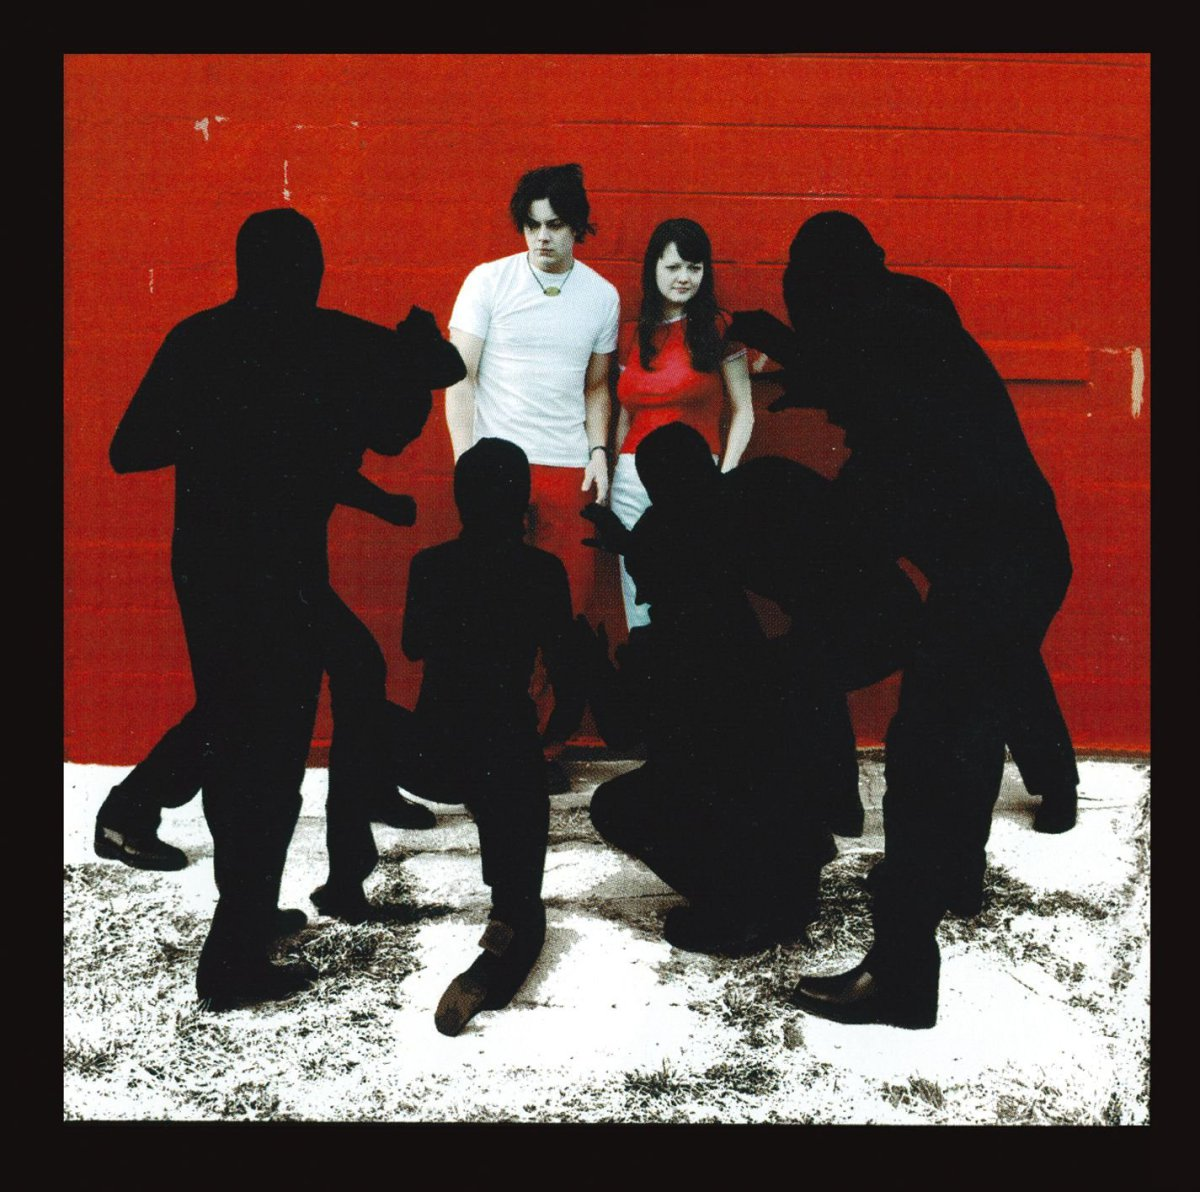 'White blood cell' – The White Stripes